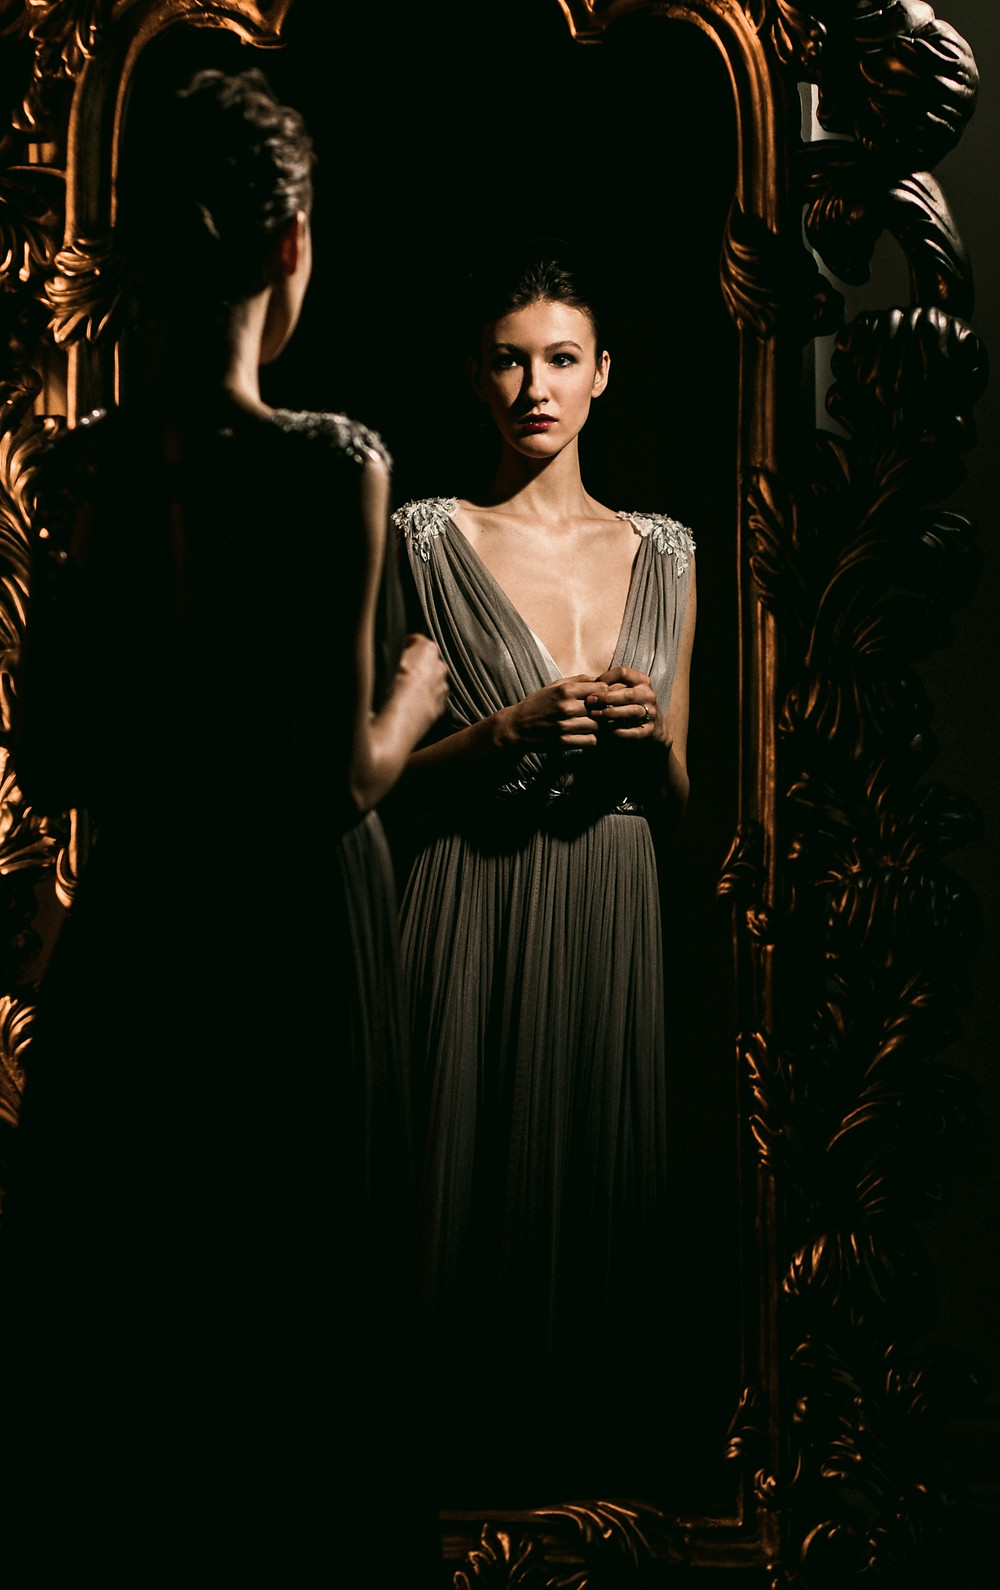 A woman with long dark hair pulled back into a low bun wearing a pale grey ballgown stands in front of an ornate antique brass mirror, staring at her reflection staring back at her.